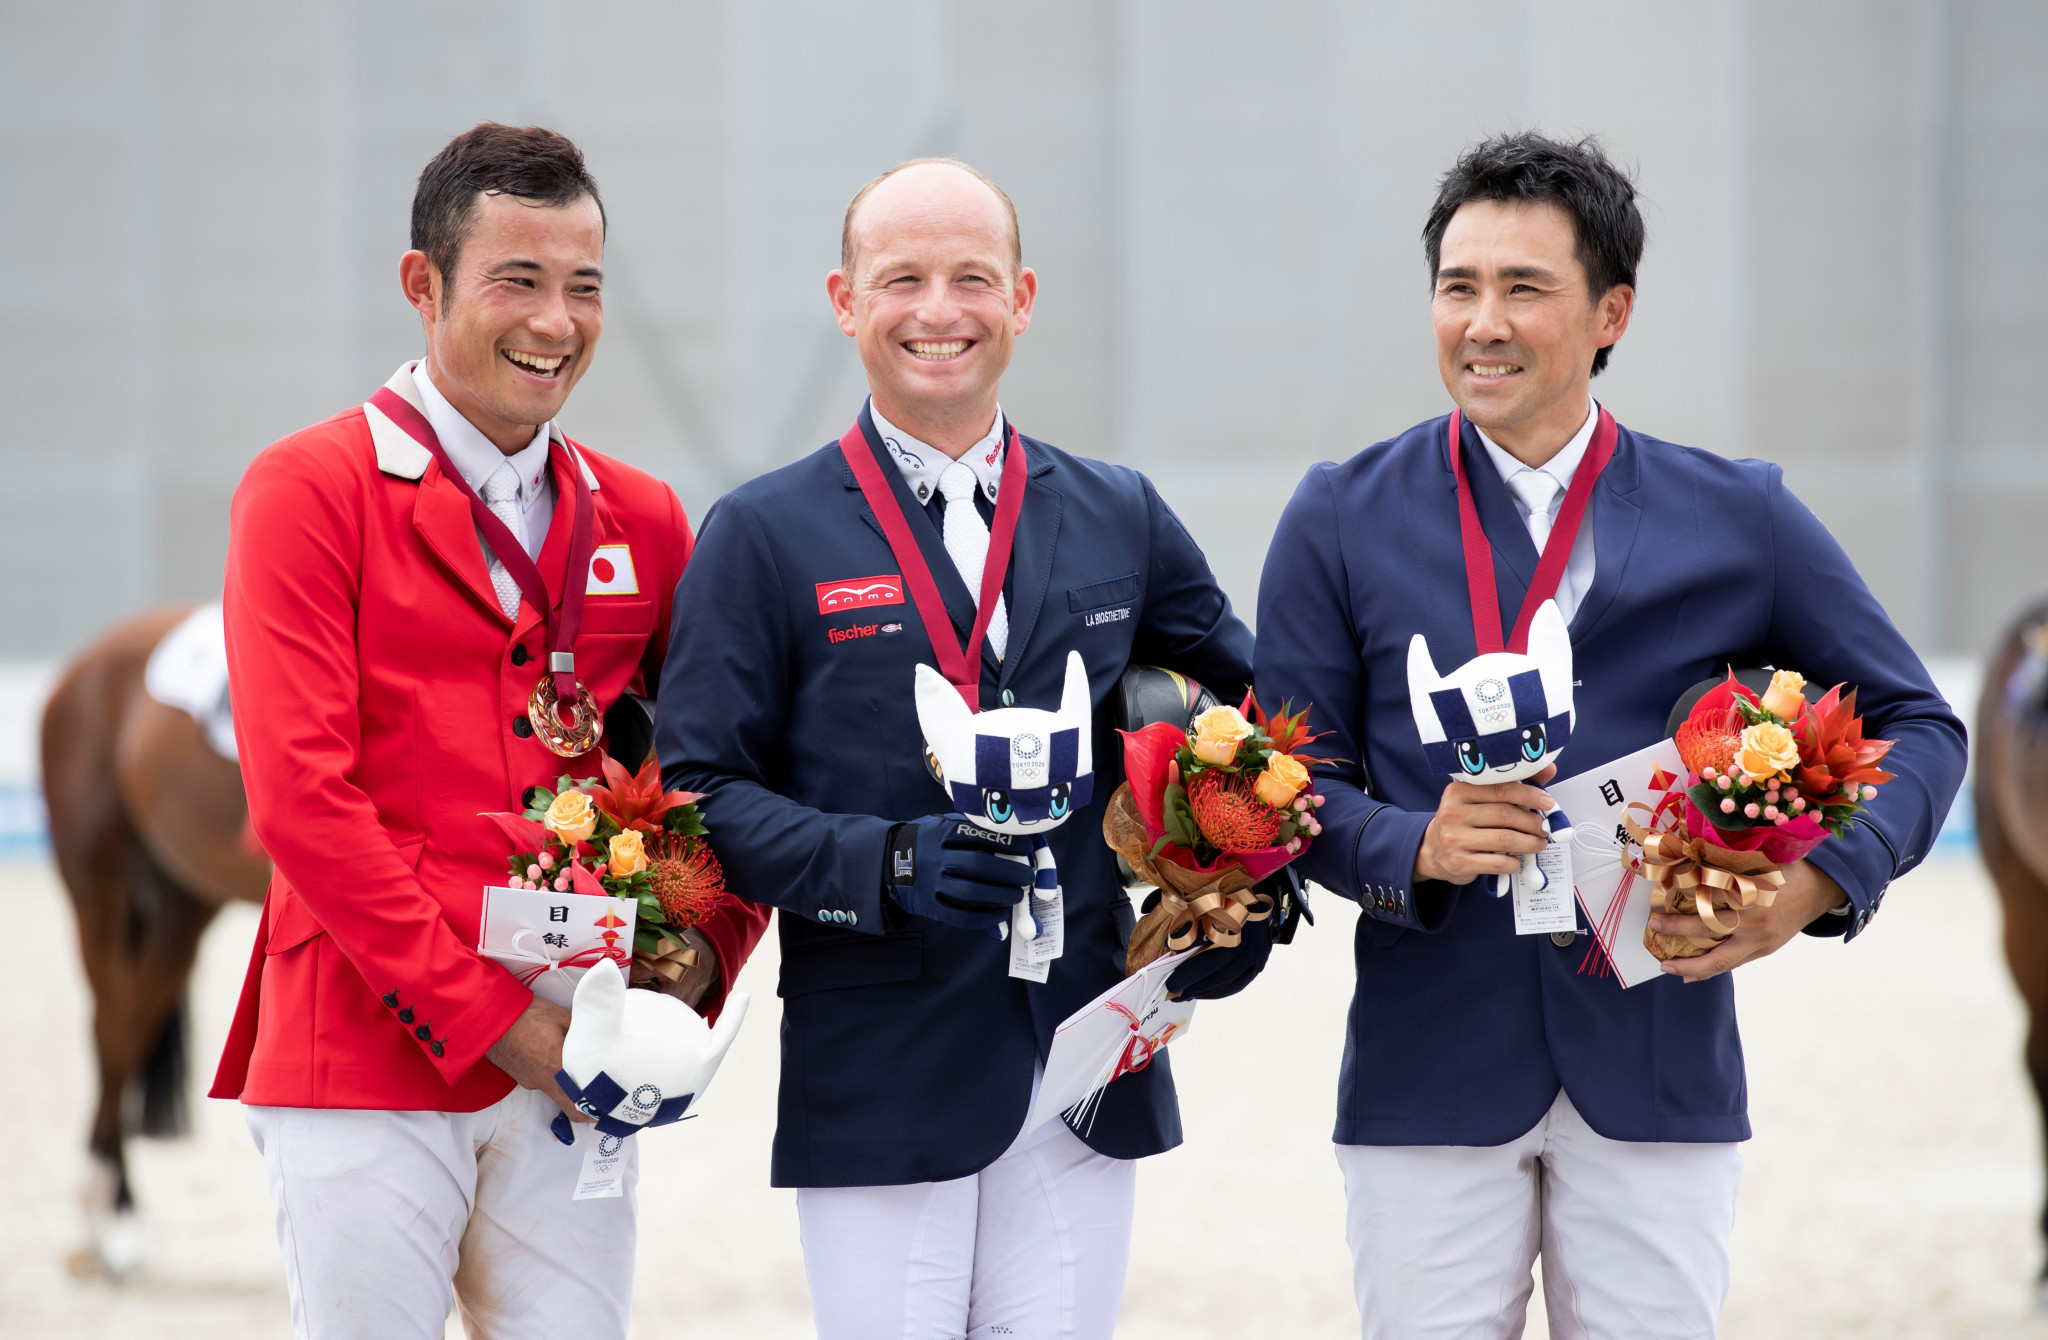 Equine health and performance at Tokyo 2020